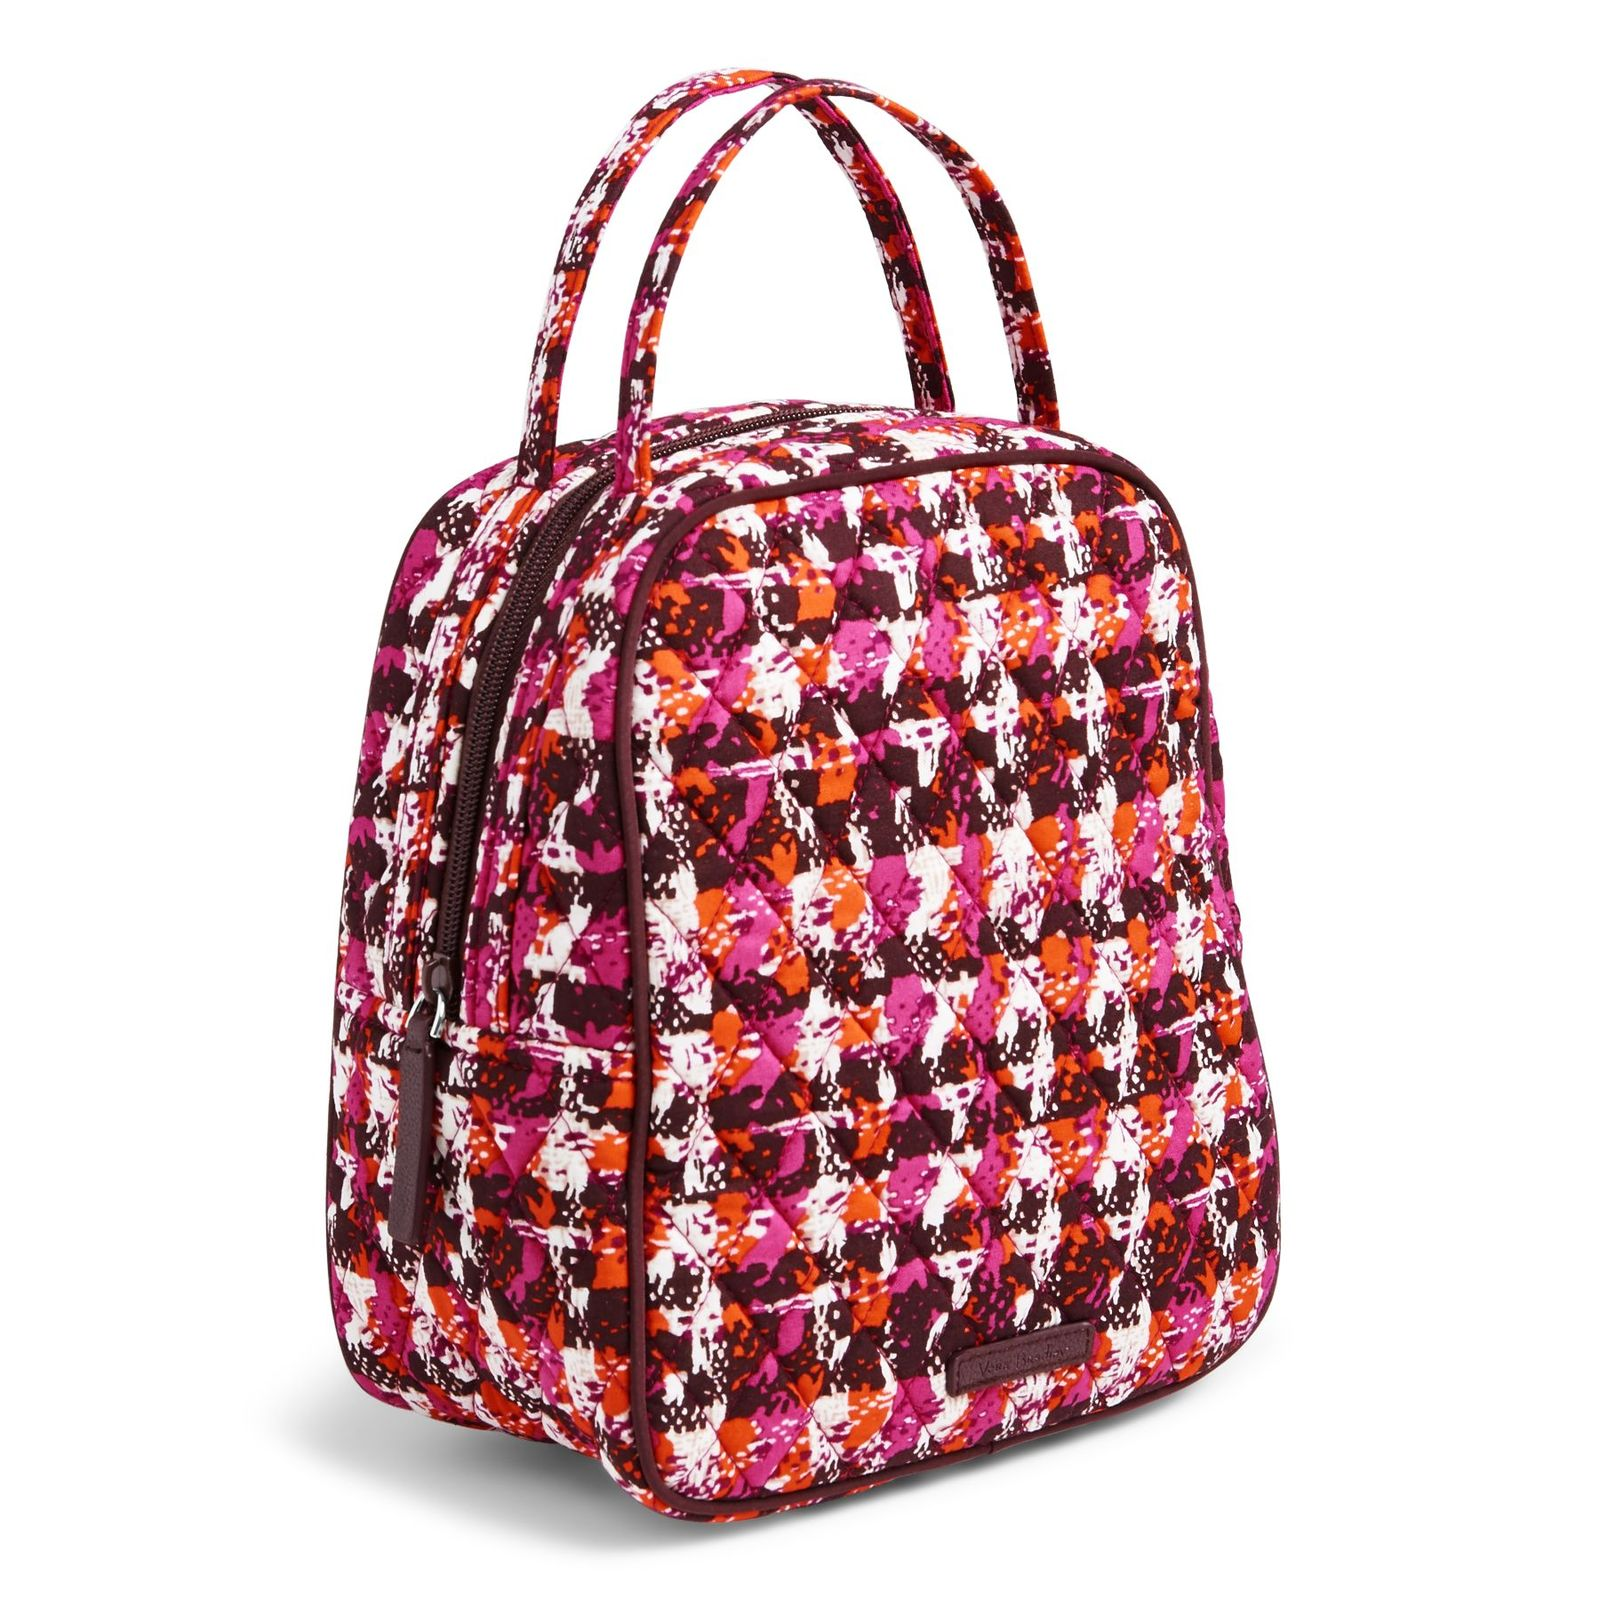 Vera Bradley Quilted Signature Cotton Lunch Bunch Bag, Houndstooth Tweed